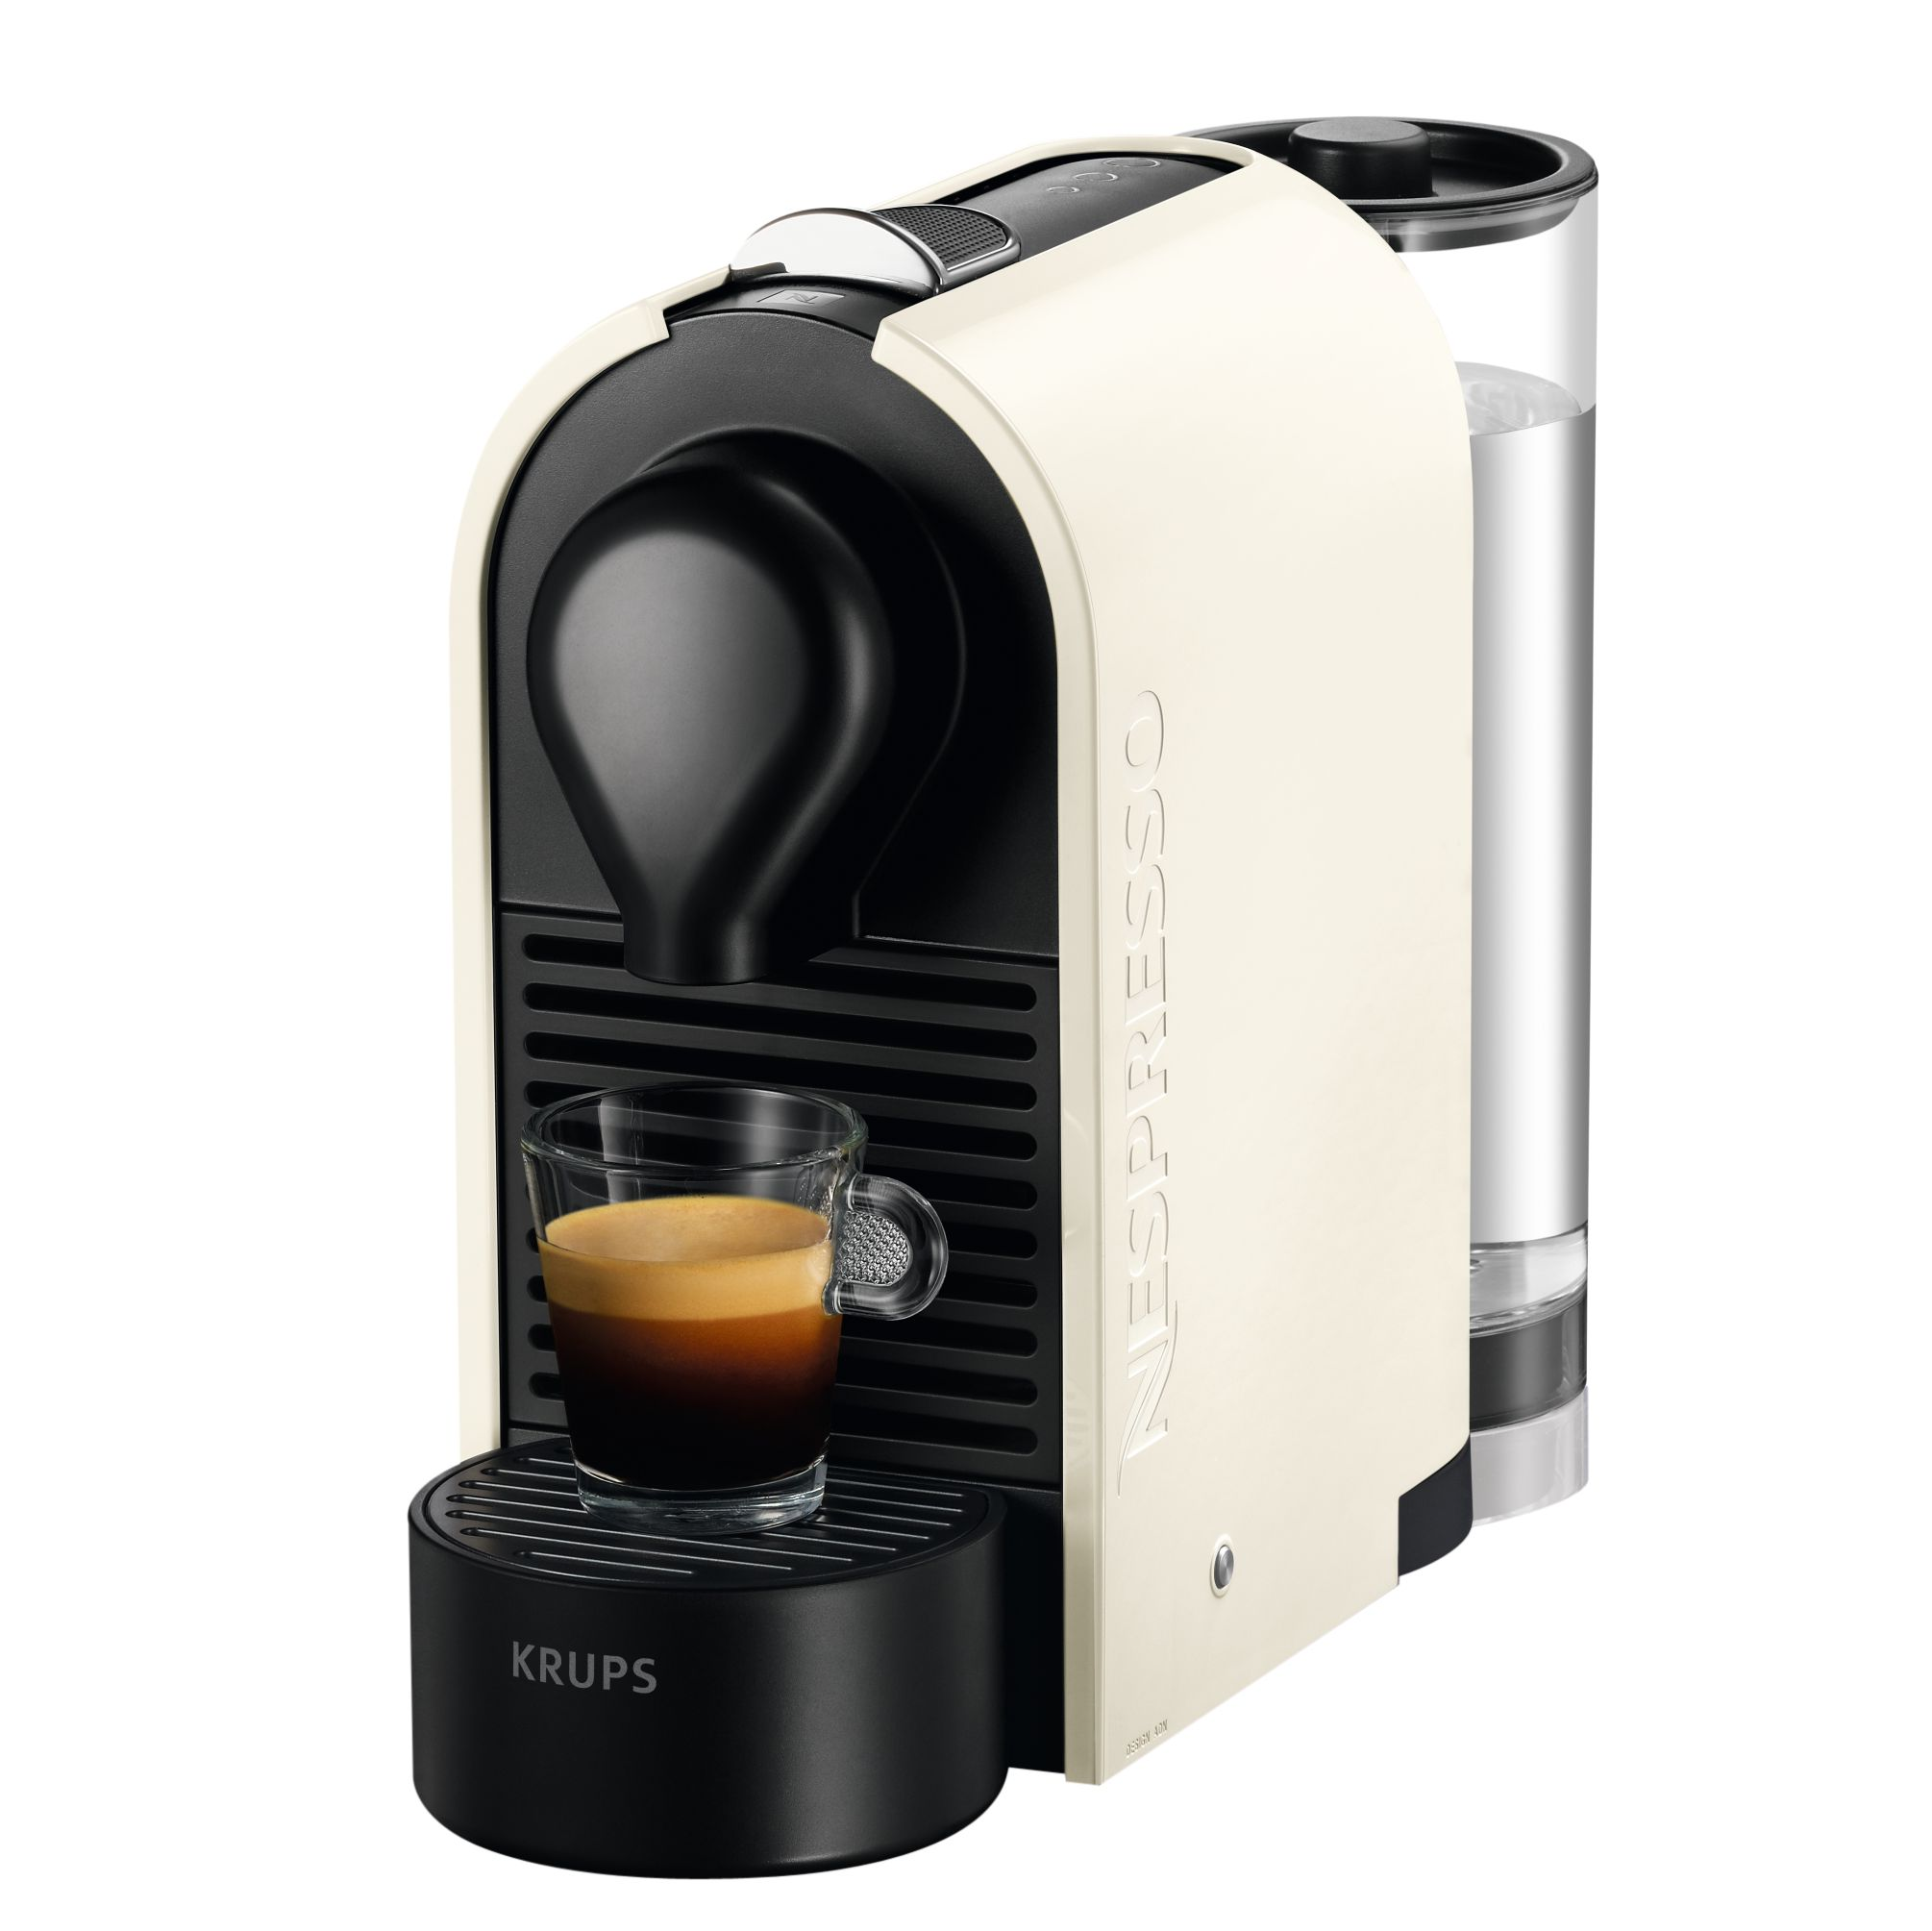 Best Coffee Maker Affordable : Buy cheap Nespresso pods coffee - compare Coffee Makers prices for best UK deals